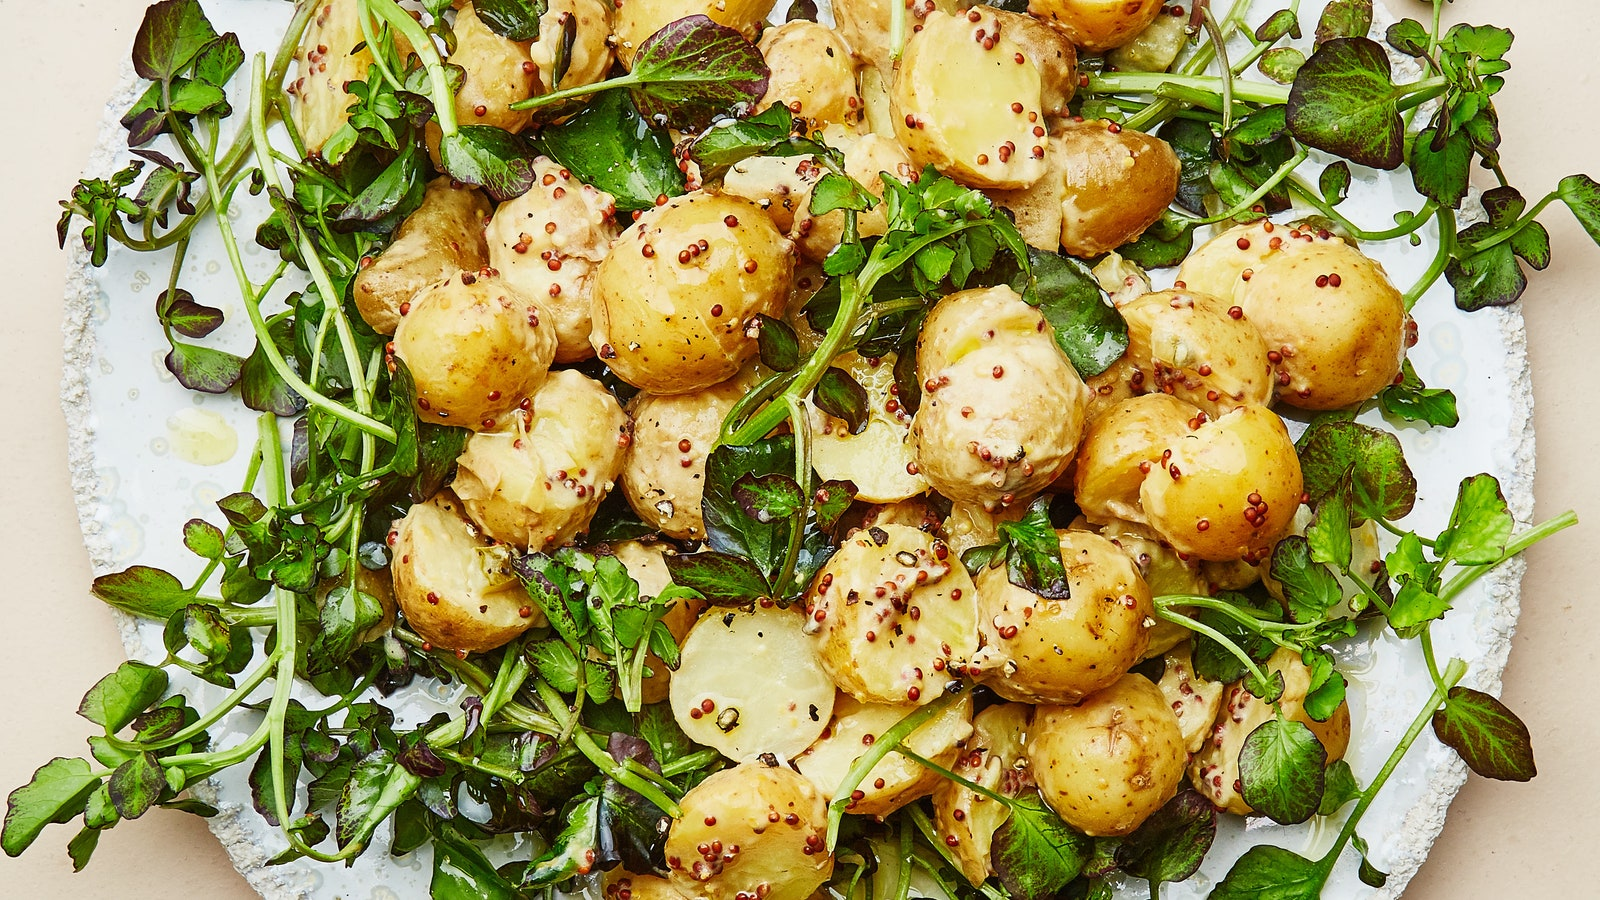 Summer Side Dishes For Park Picnics And Backyard Barbecues photo